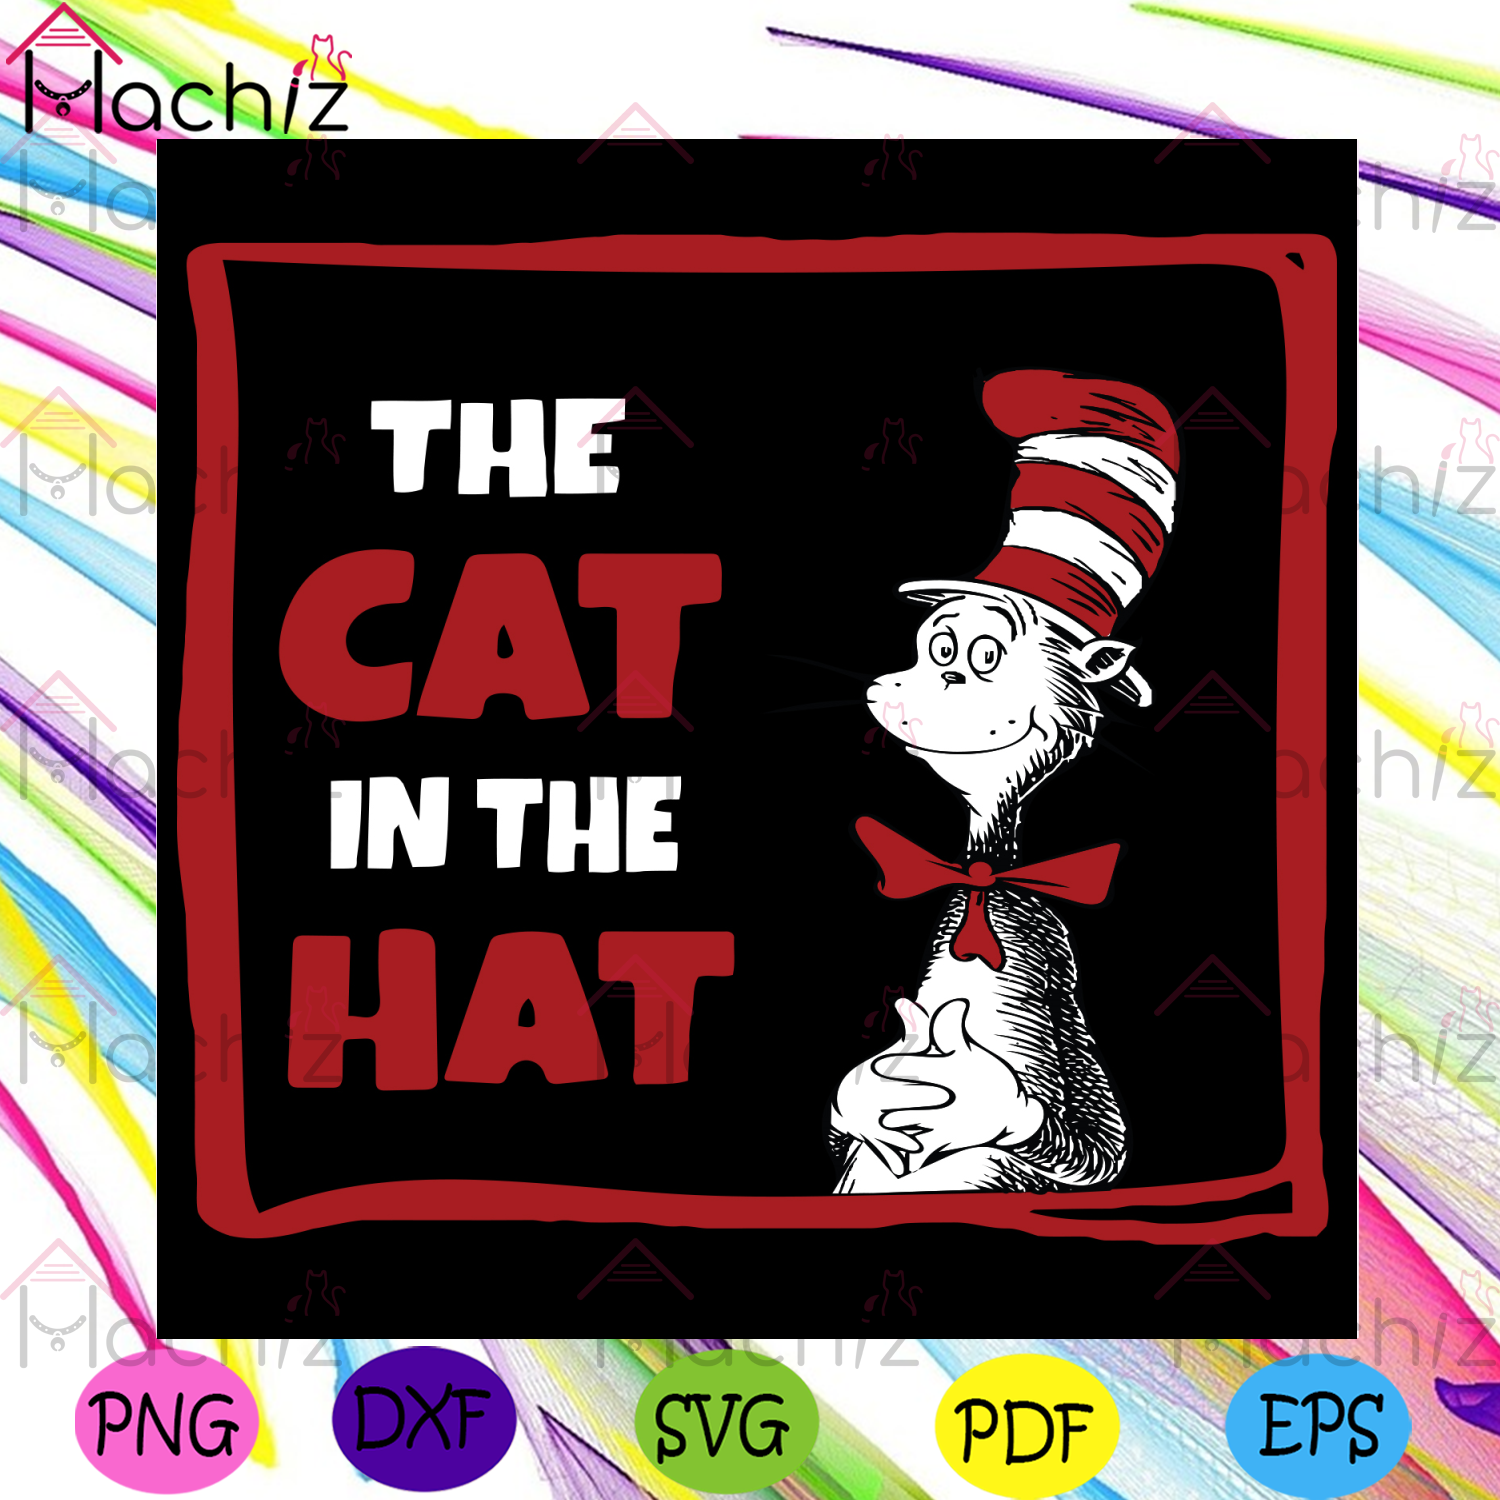 The Cat In The Hat Svg, Dr Seuss Svg, The Cat In The Hat Svg, Dr Seuss Cat Svg, The Cat Svg, The Cat In The Hat Lovers Svg, Catinthehat Svg, Catinthehat Gifts Svg, Dr Seuss Lovers Svg, Dr Seuss Fans Svg, Dr Seuss Gifts Svg